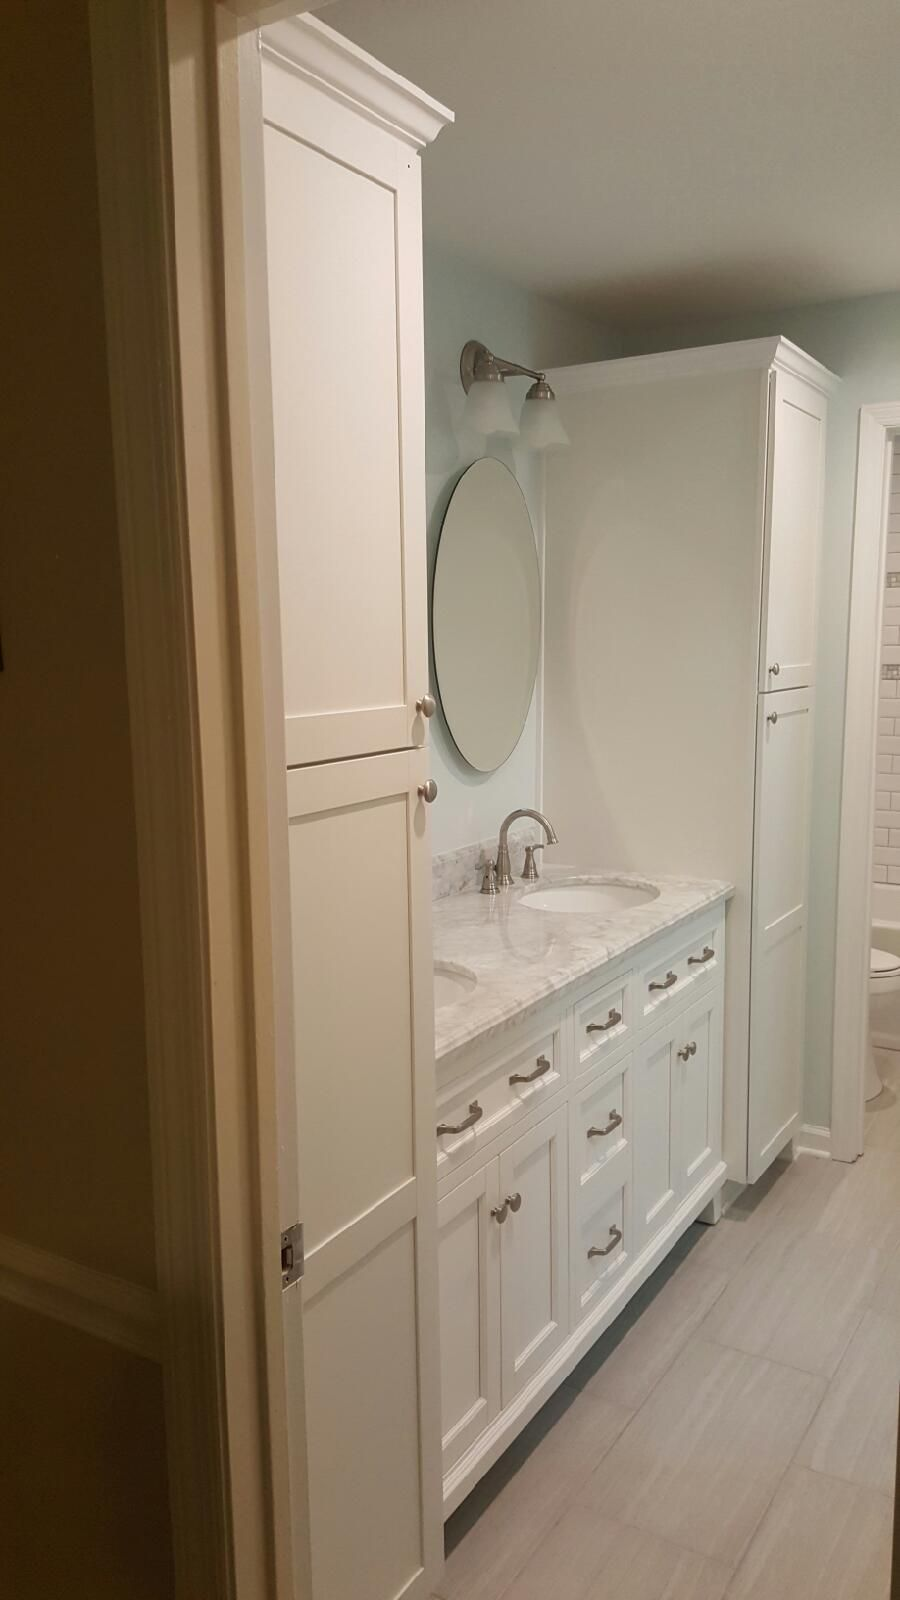 Linen Towers From Lowe S Mirrored Medicine Cabinets Floor Tile And Light Fixtures Are